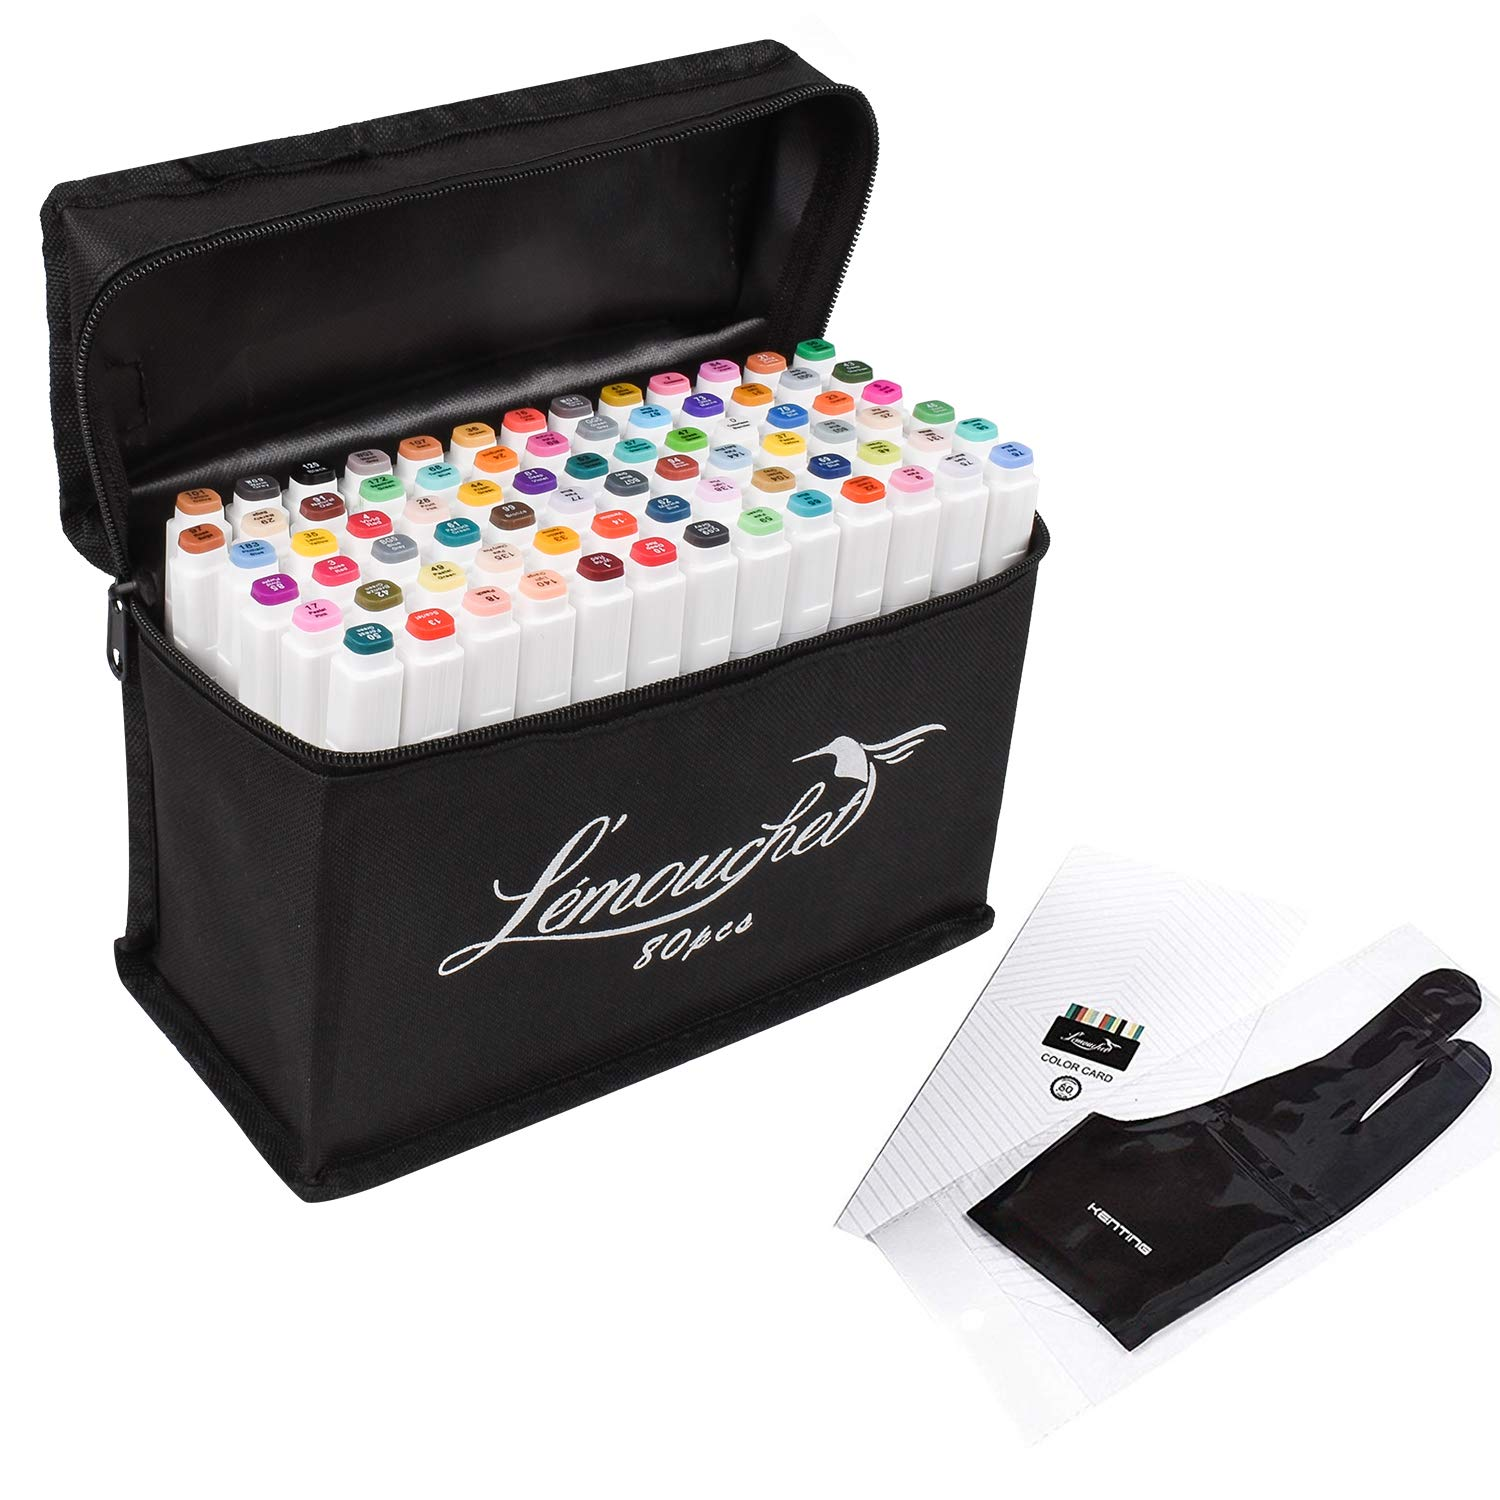 L\'émouchet Dual Tips Art Animation Twin Marker Pens with Carrying Case for Art Sketch Coloring Painting Highlighting Underlining Render Manga and Design, Set of 80 Colors